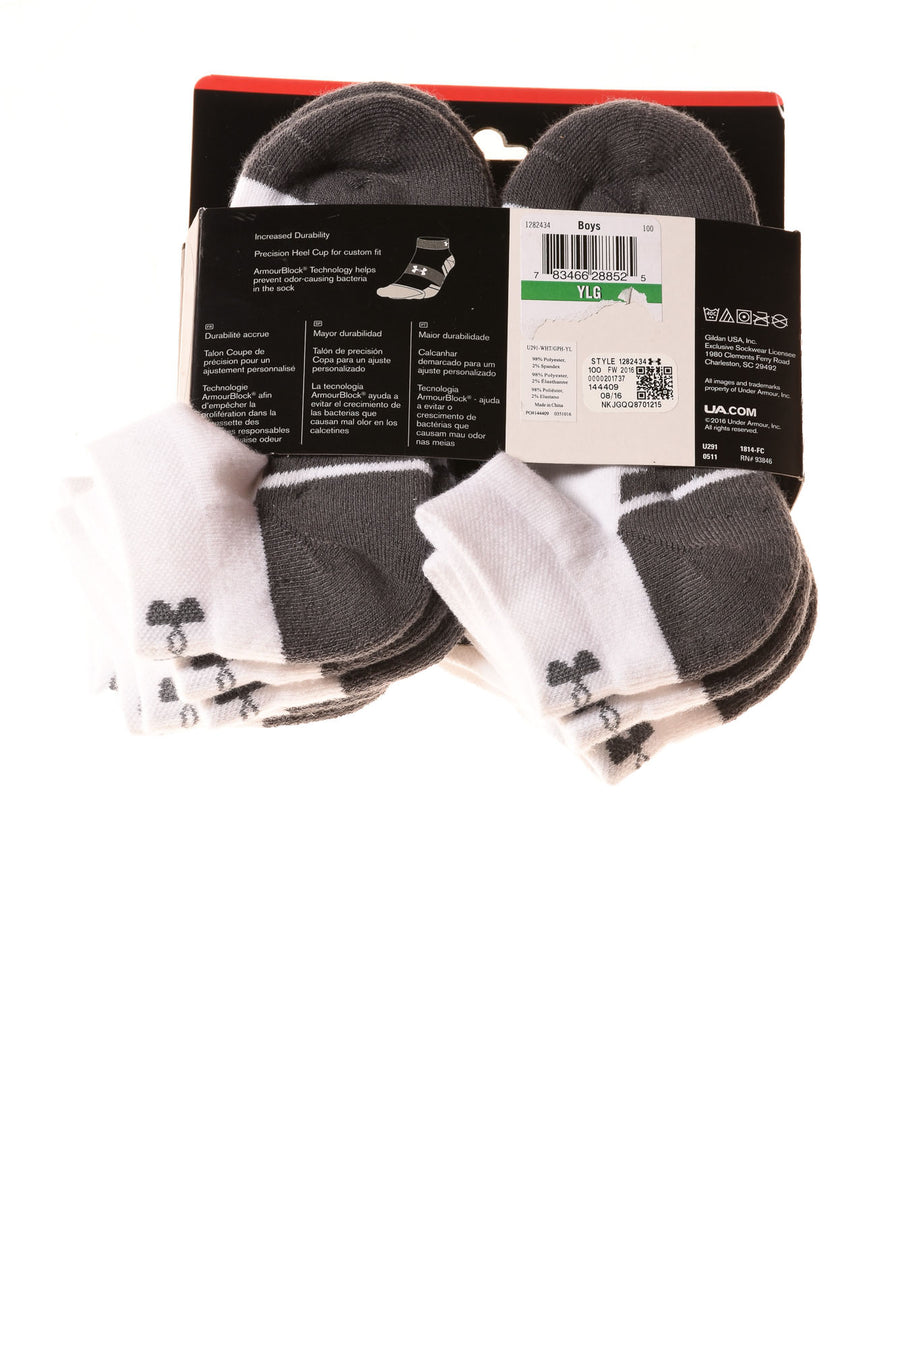 NEW Under Armour Boy's Socks 1-4 white & Gray